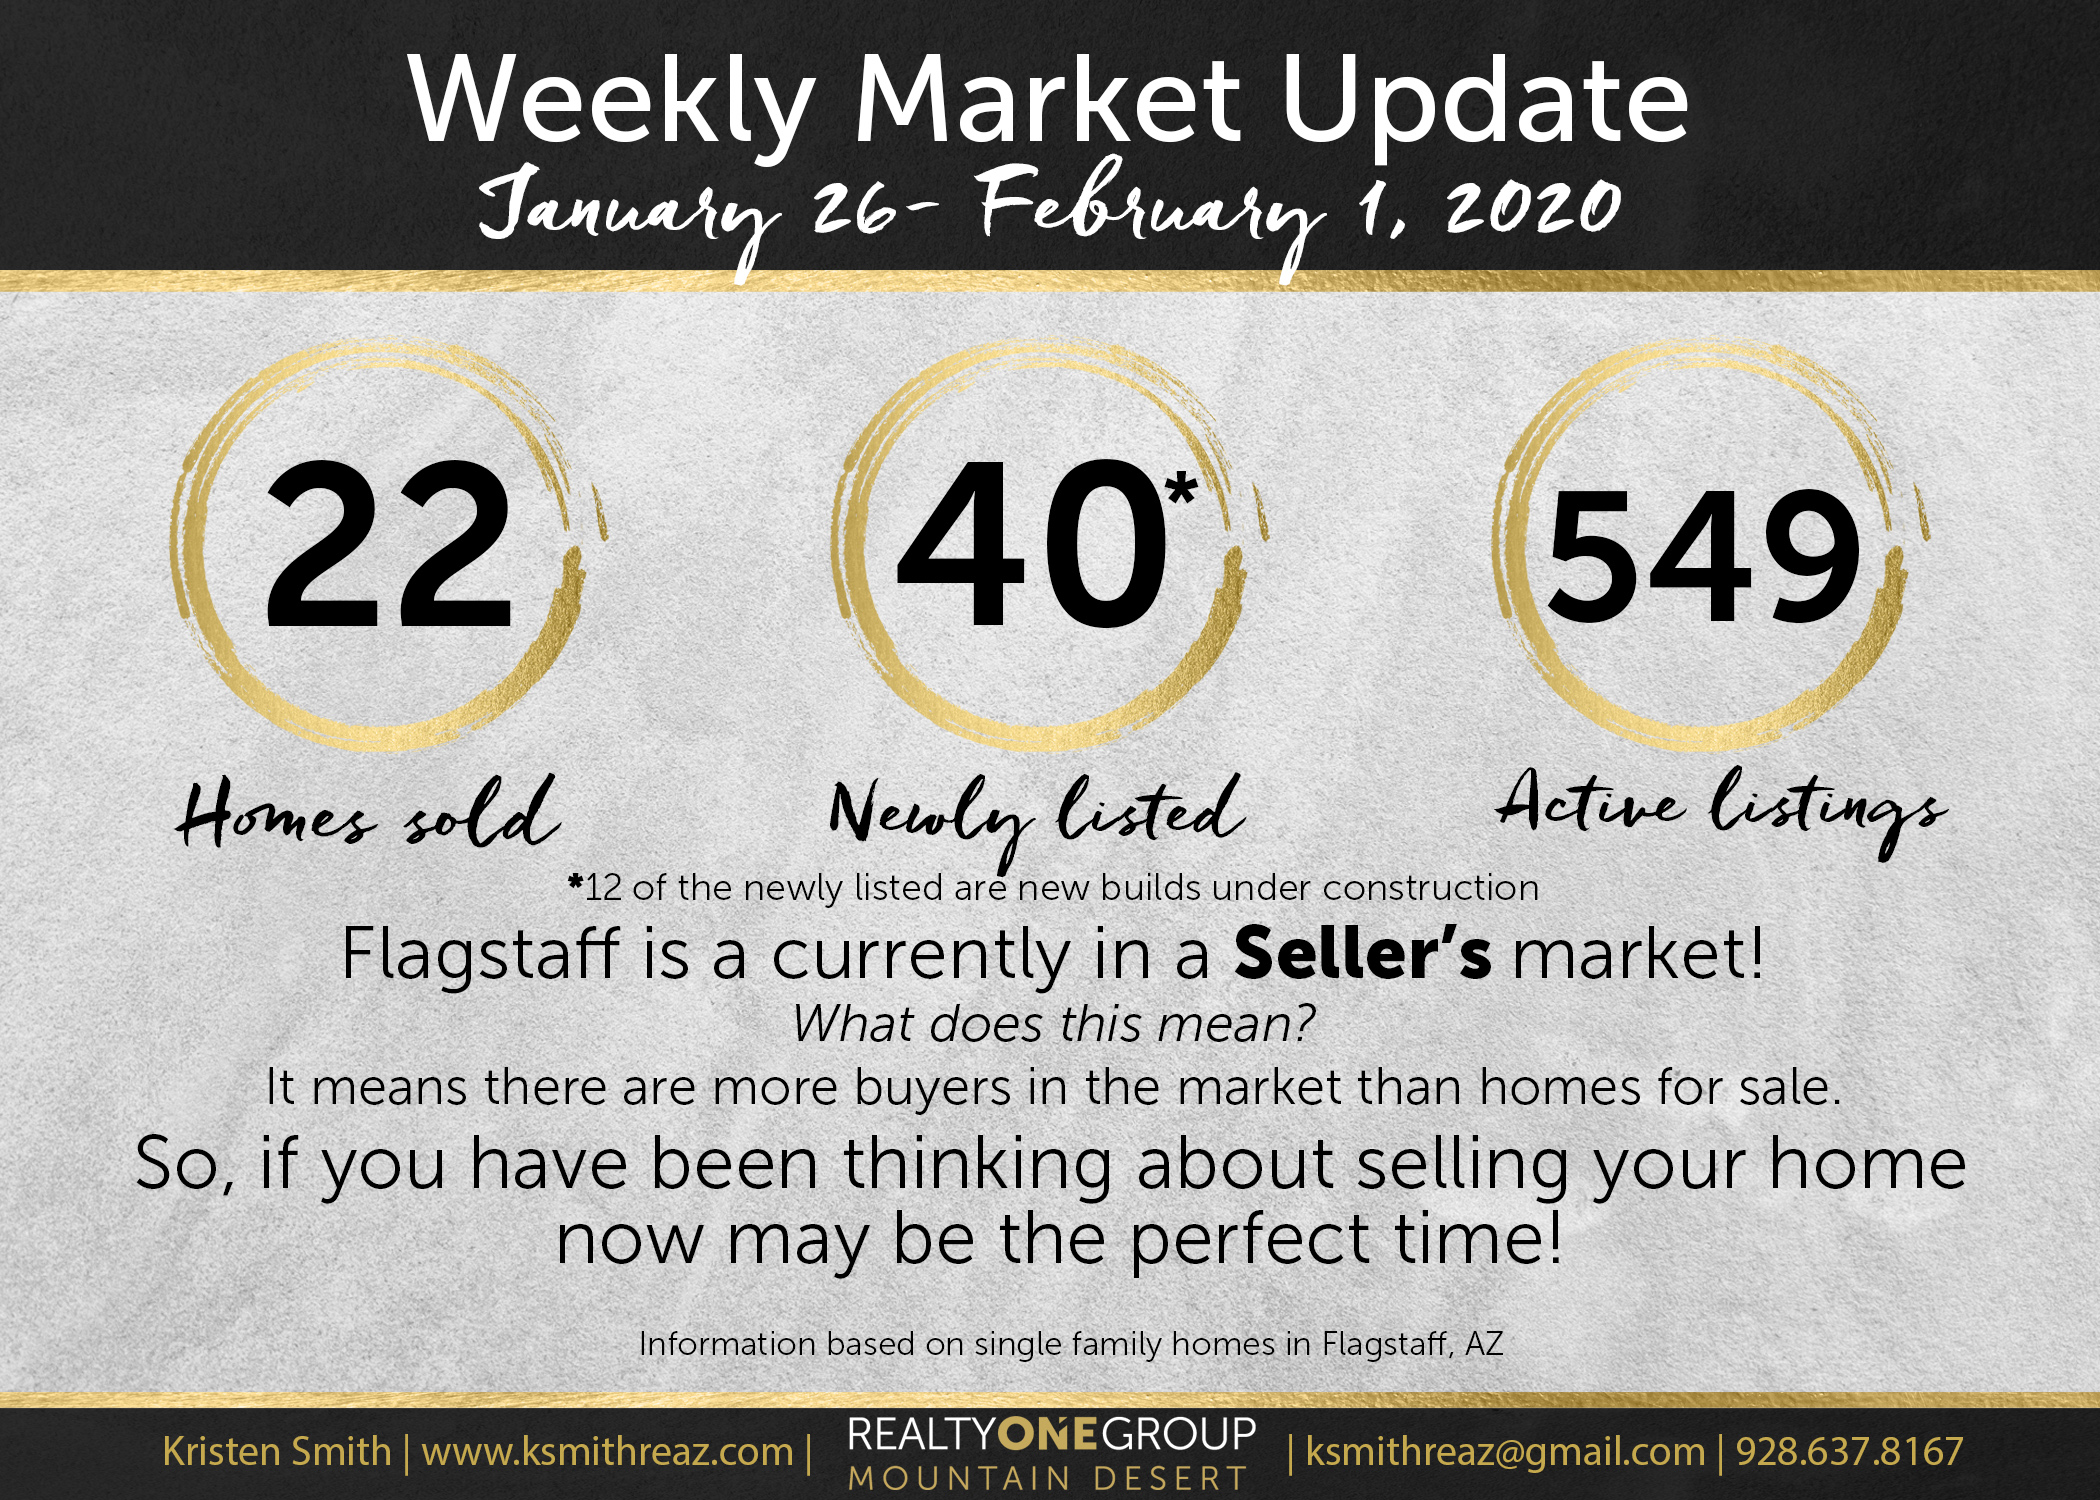 January 26- February 1 Weekly Market Update